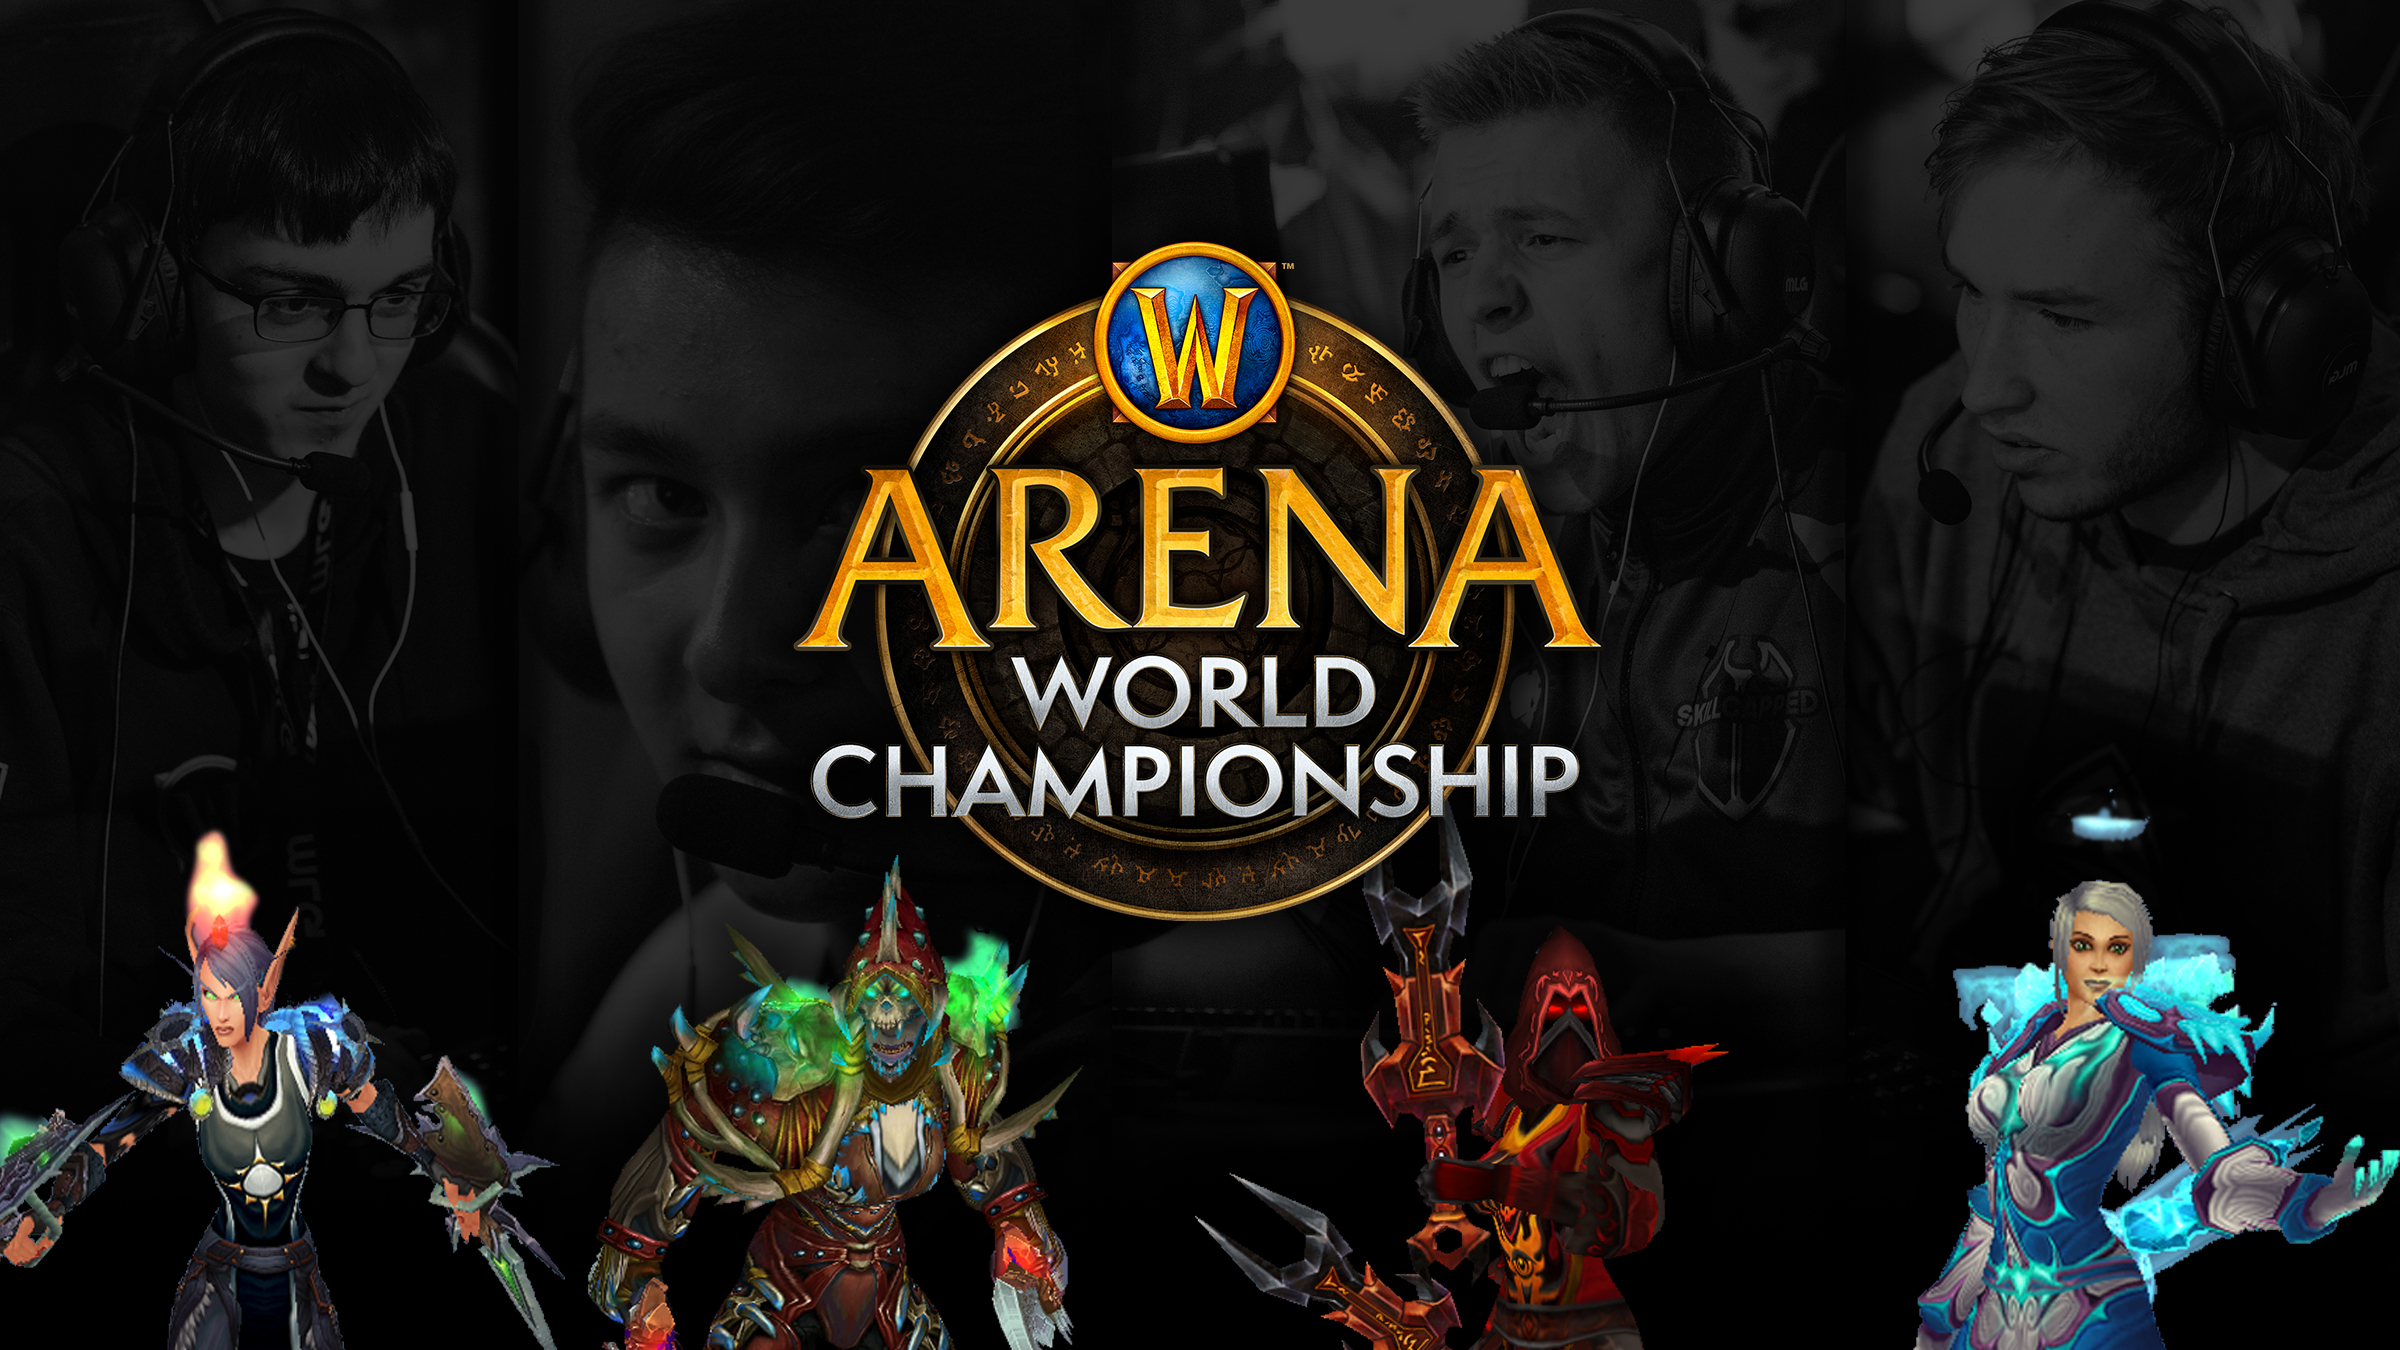 WoW Arena World Championship Summer Finals Viewer's Guide